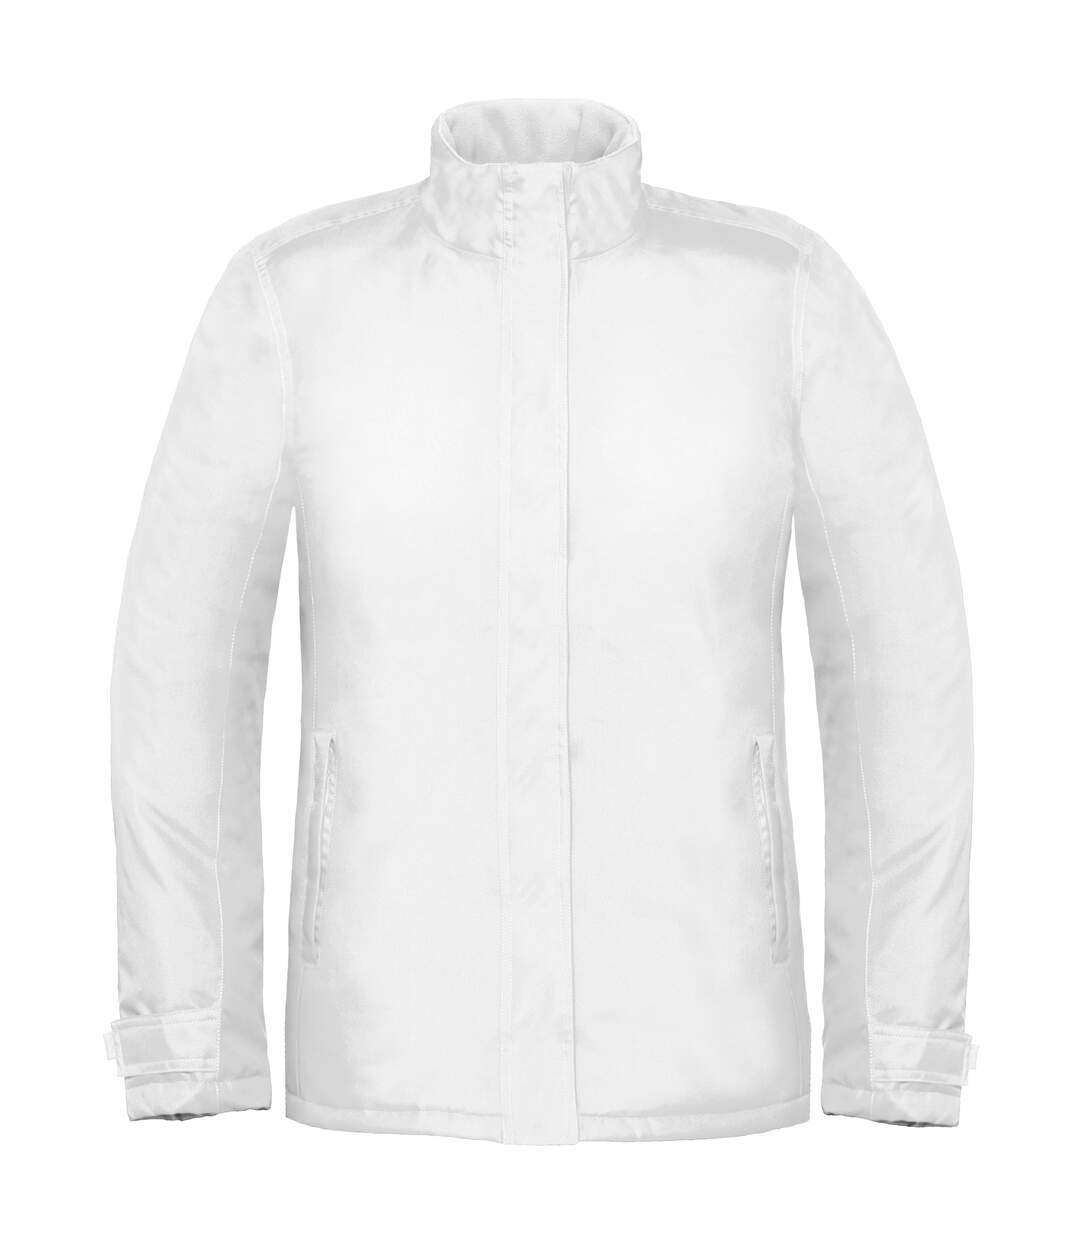 B&C Womens/Ladies Premium Real+ Windproof Waterproof Thermo-Isolated Jacket (White) - UTBC2003